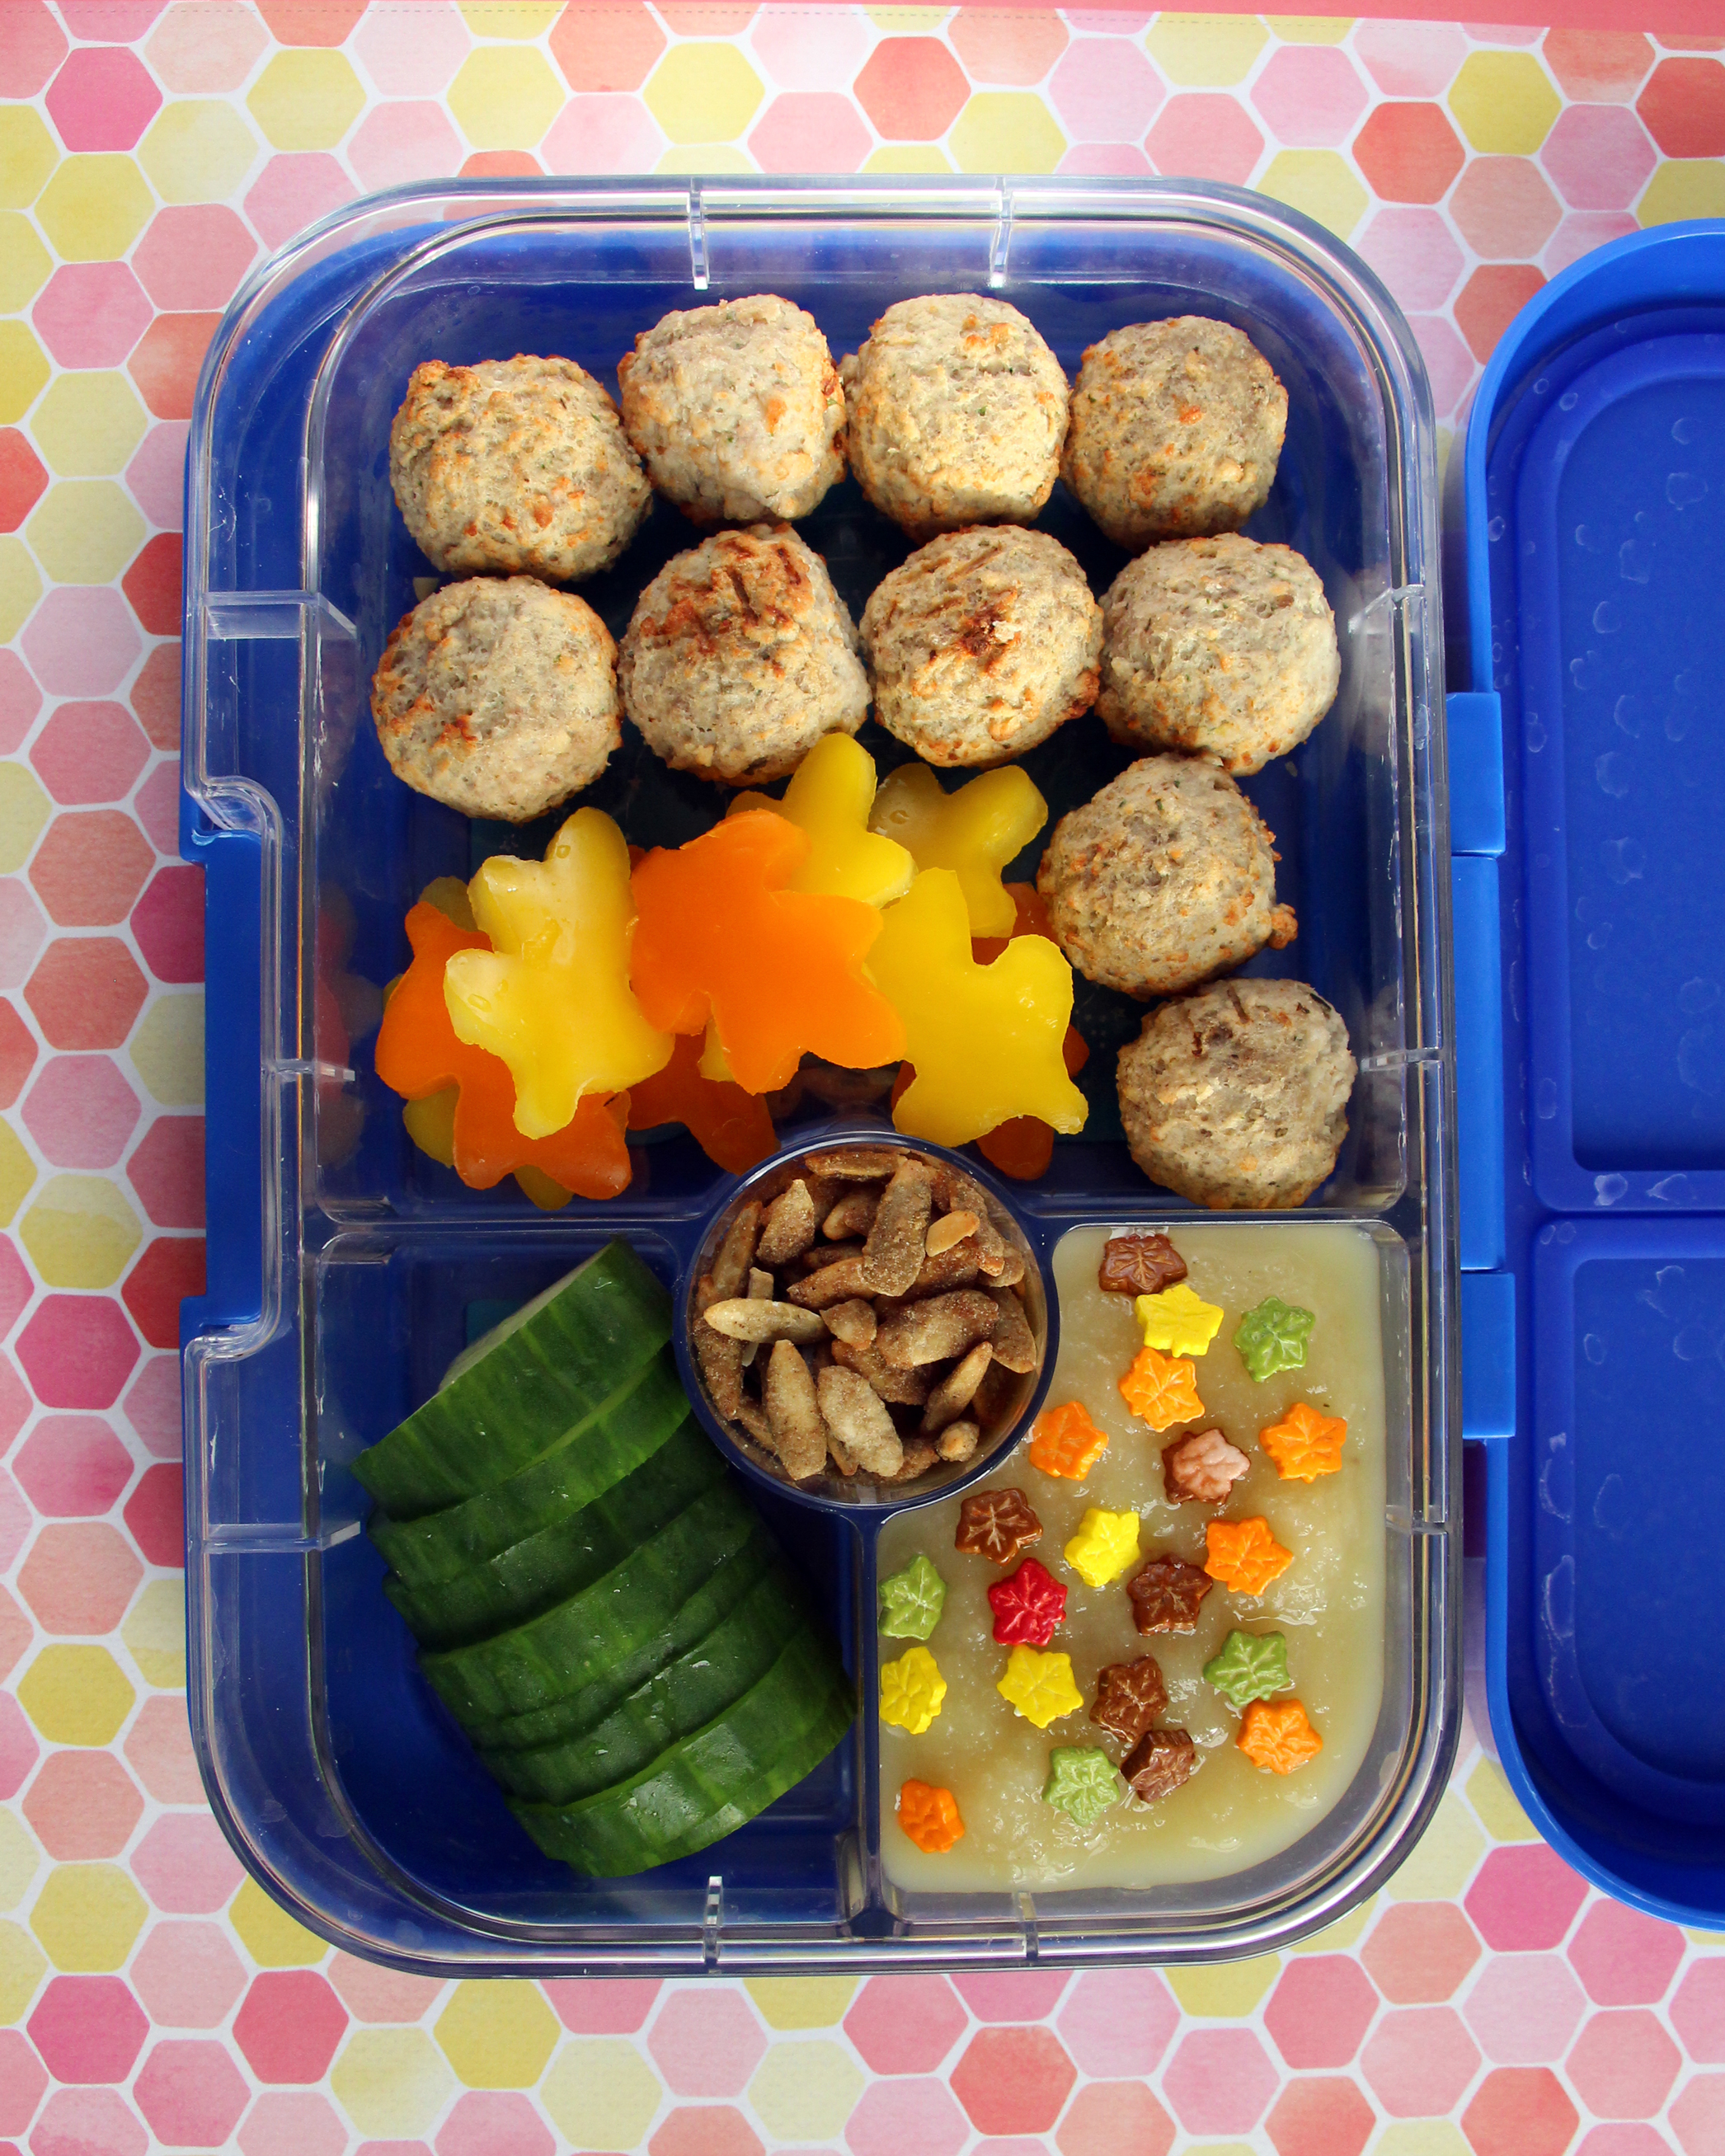 bento box meatballs applesauce